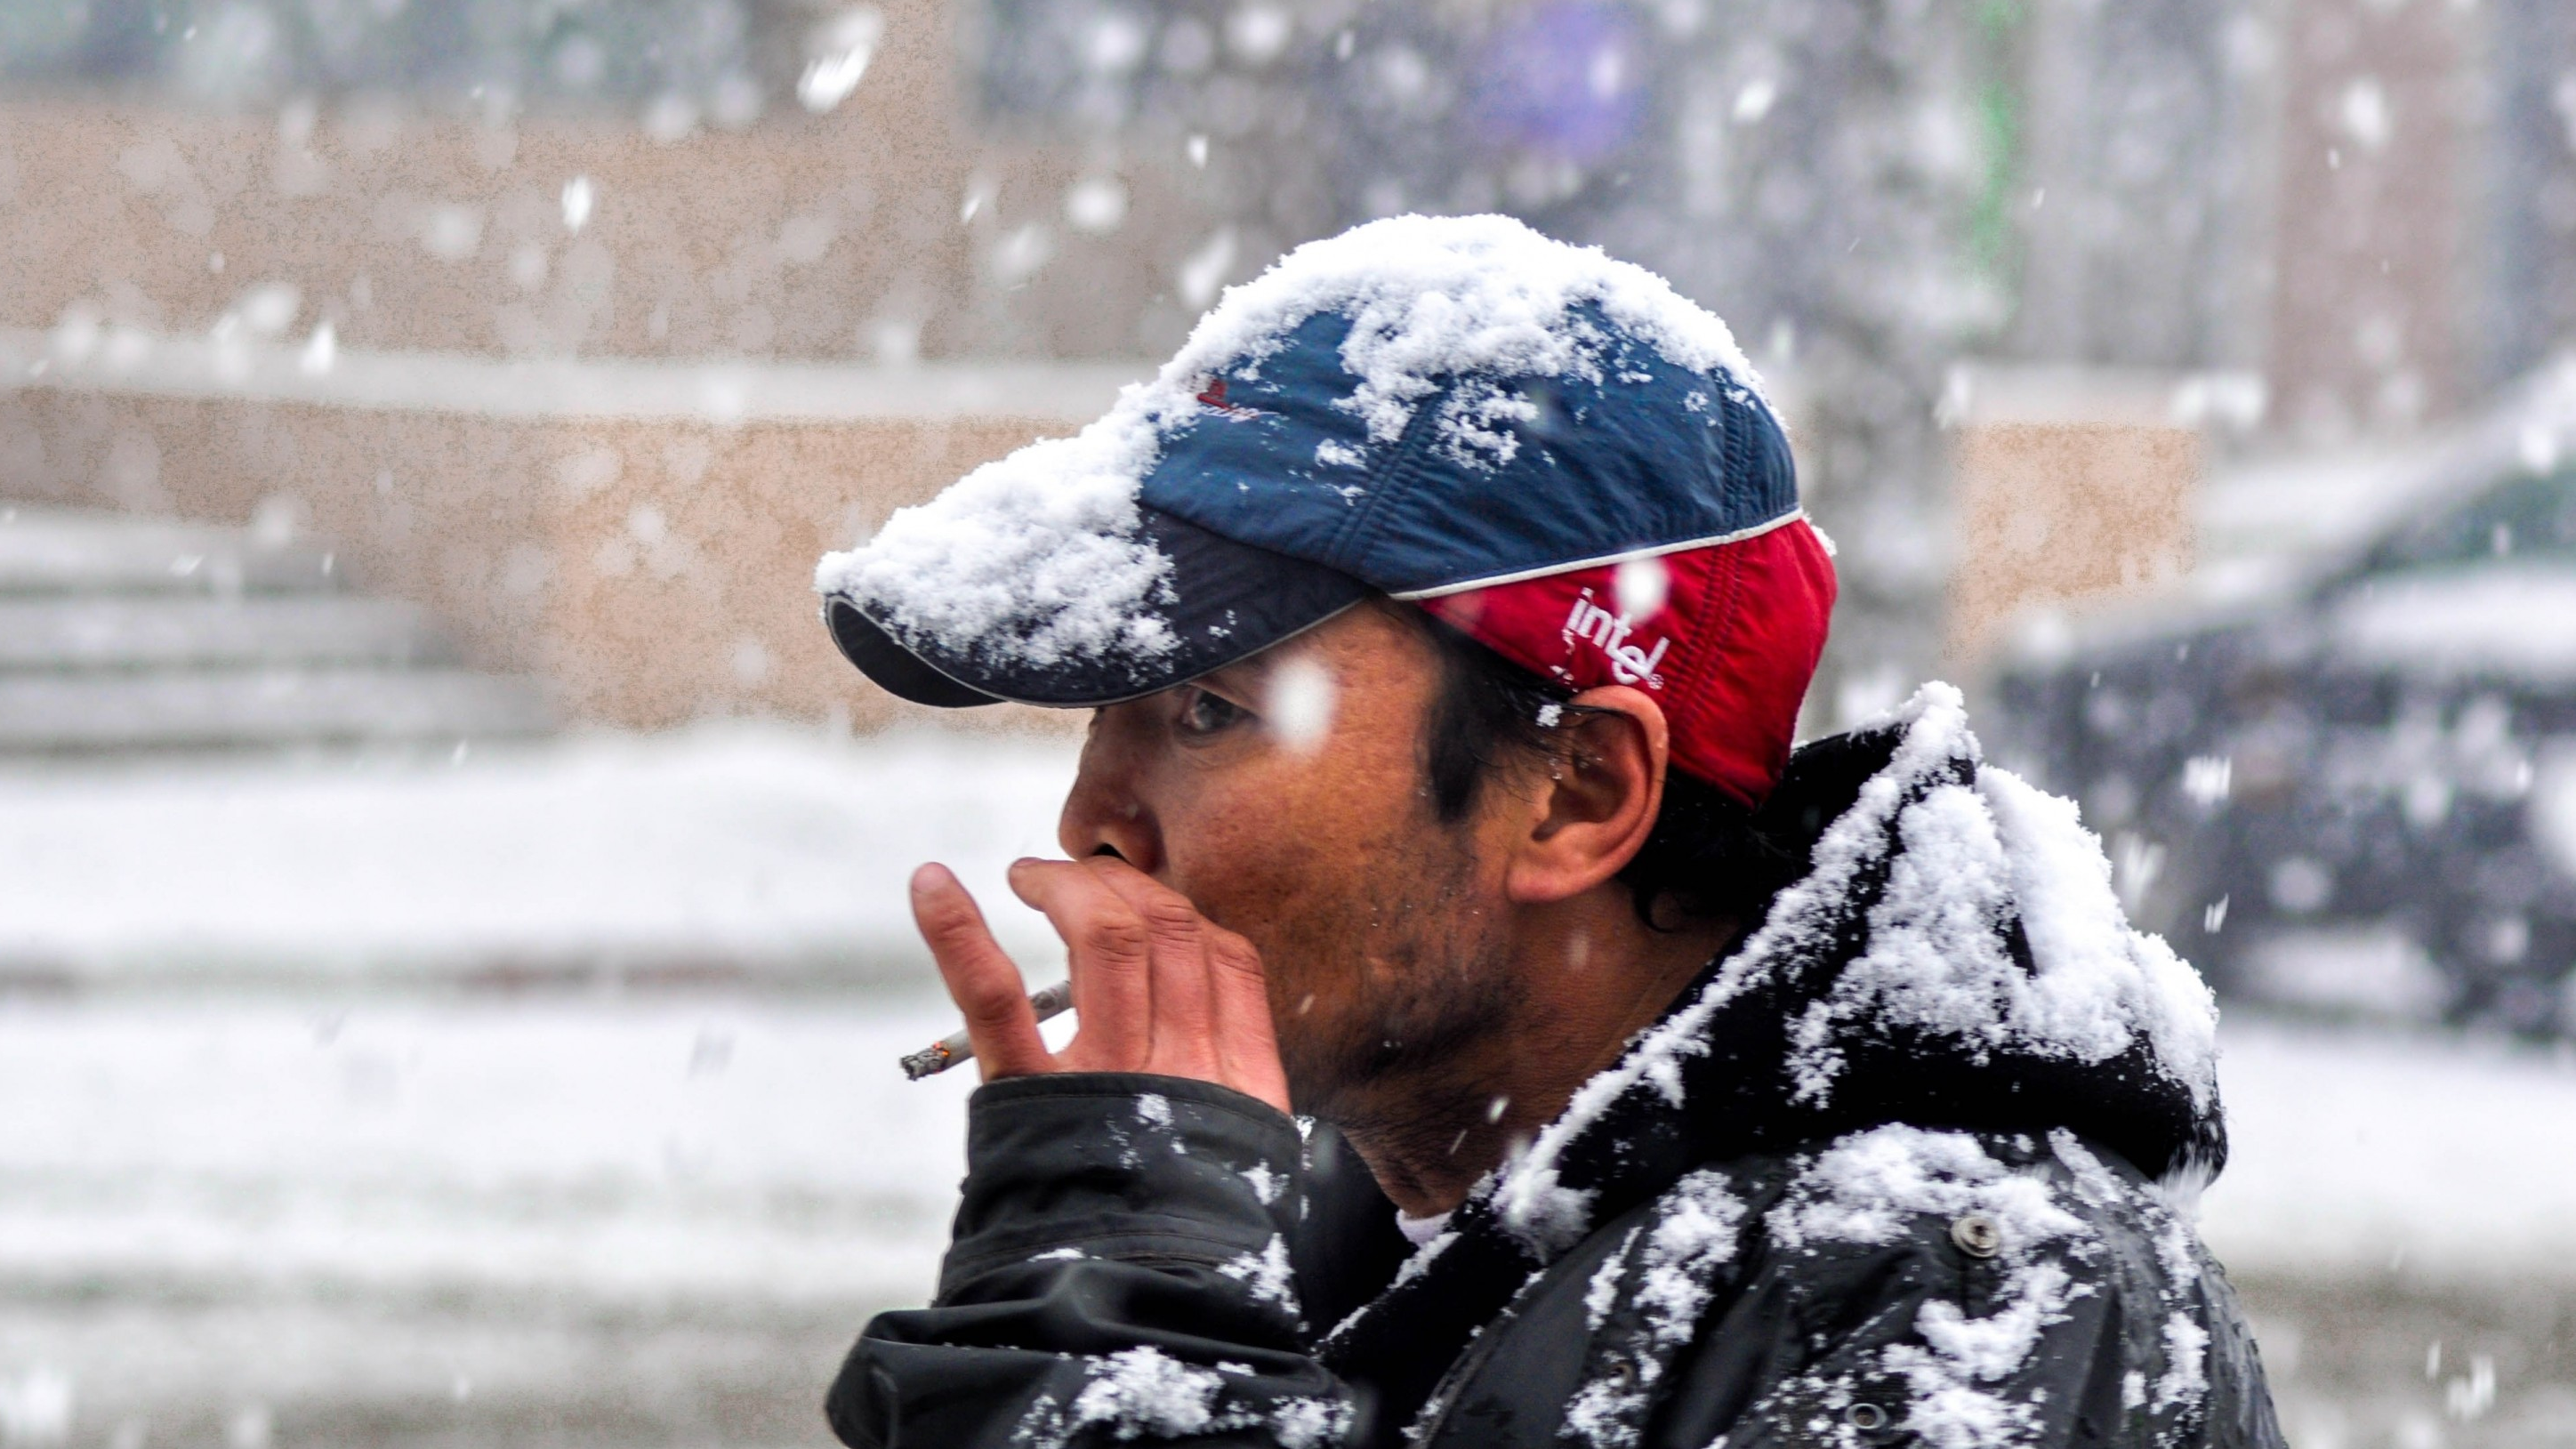 If You're A 'Non-Smoker' Who Only Smokes Casually, You're Not Off The Hook